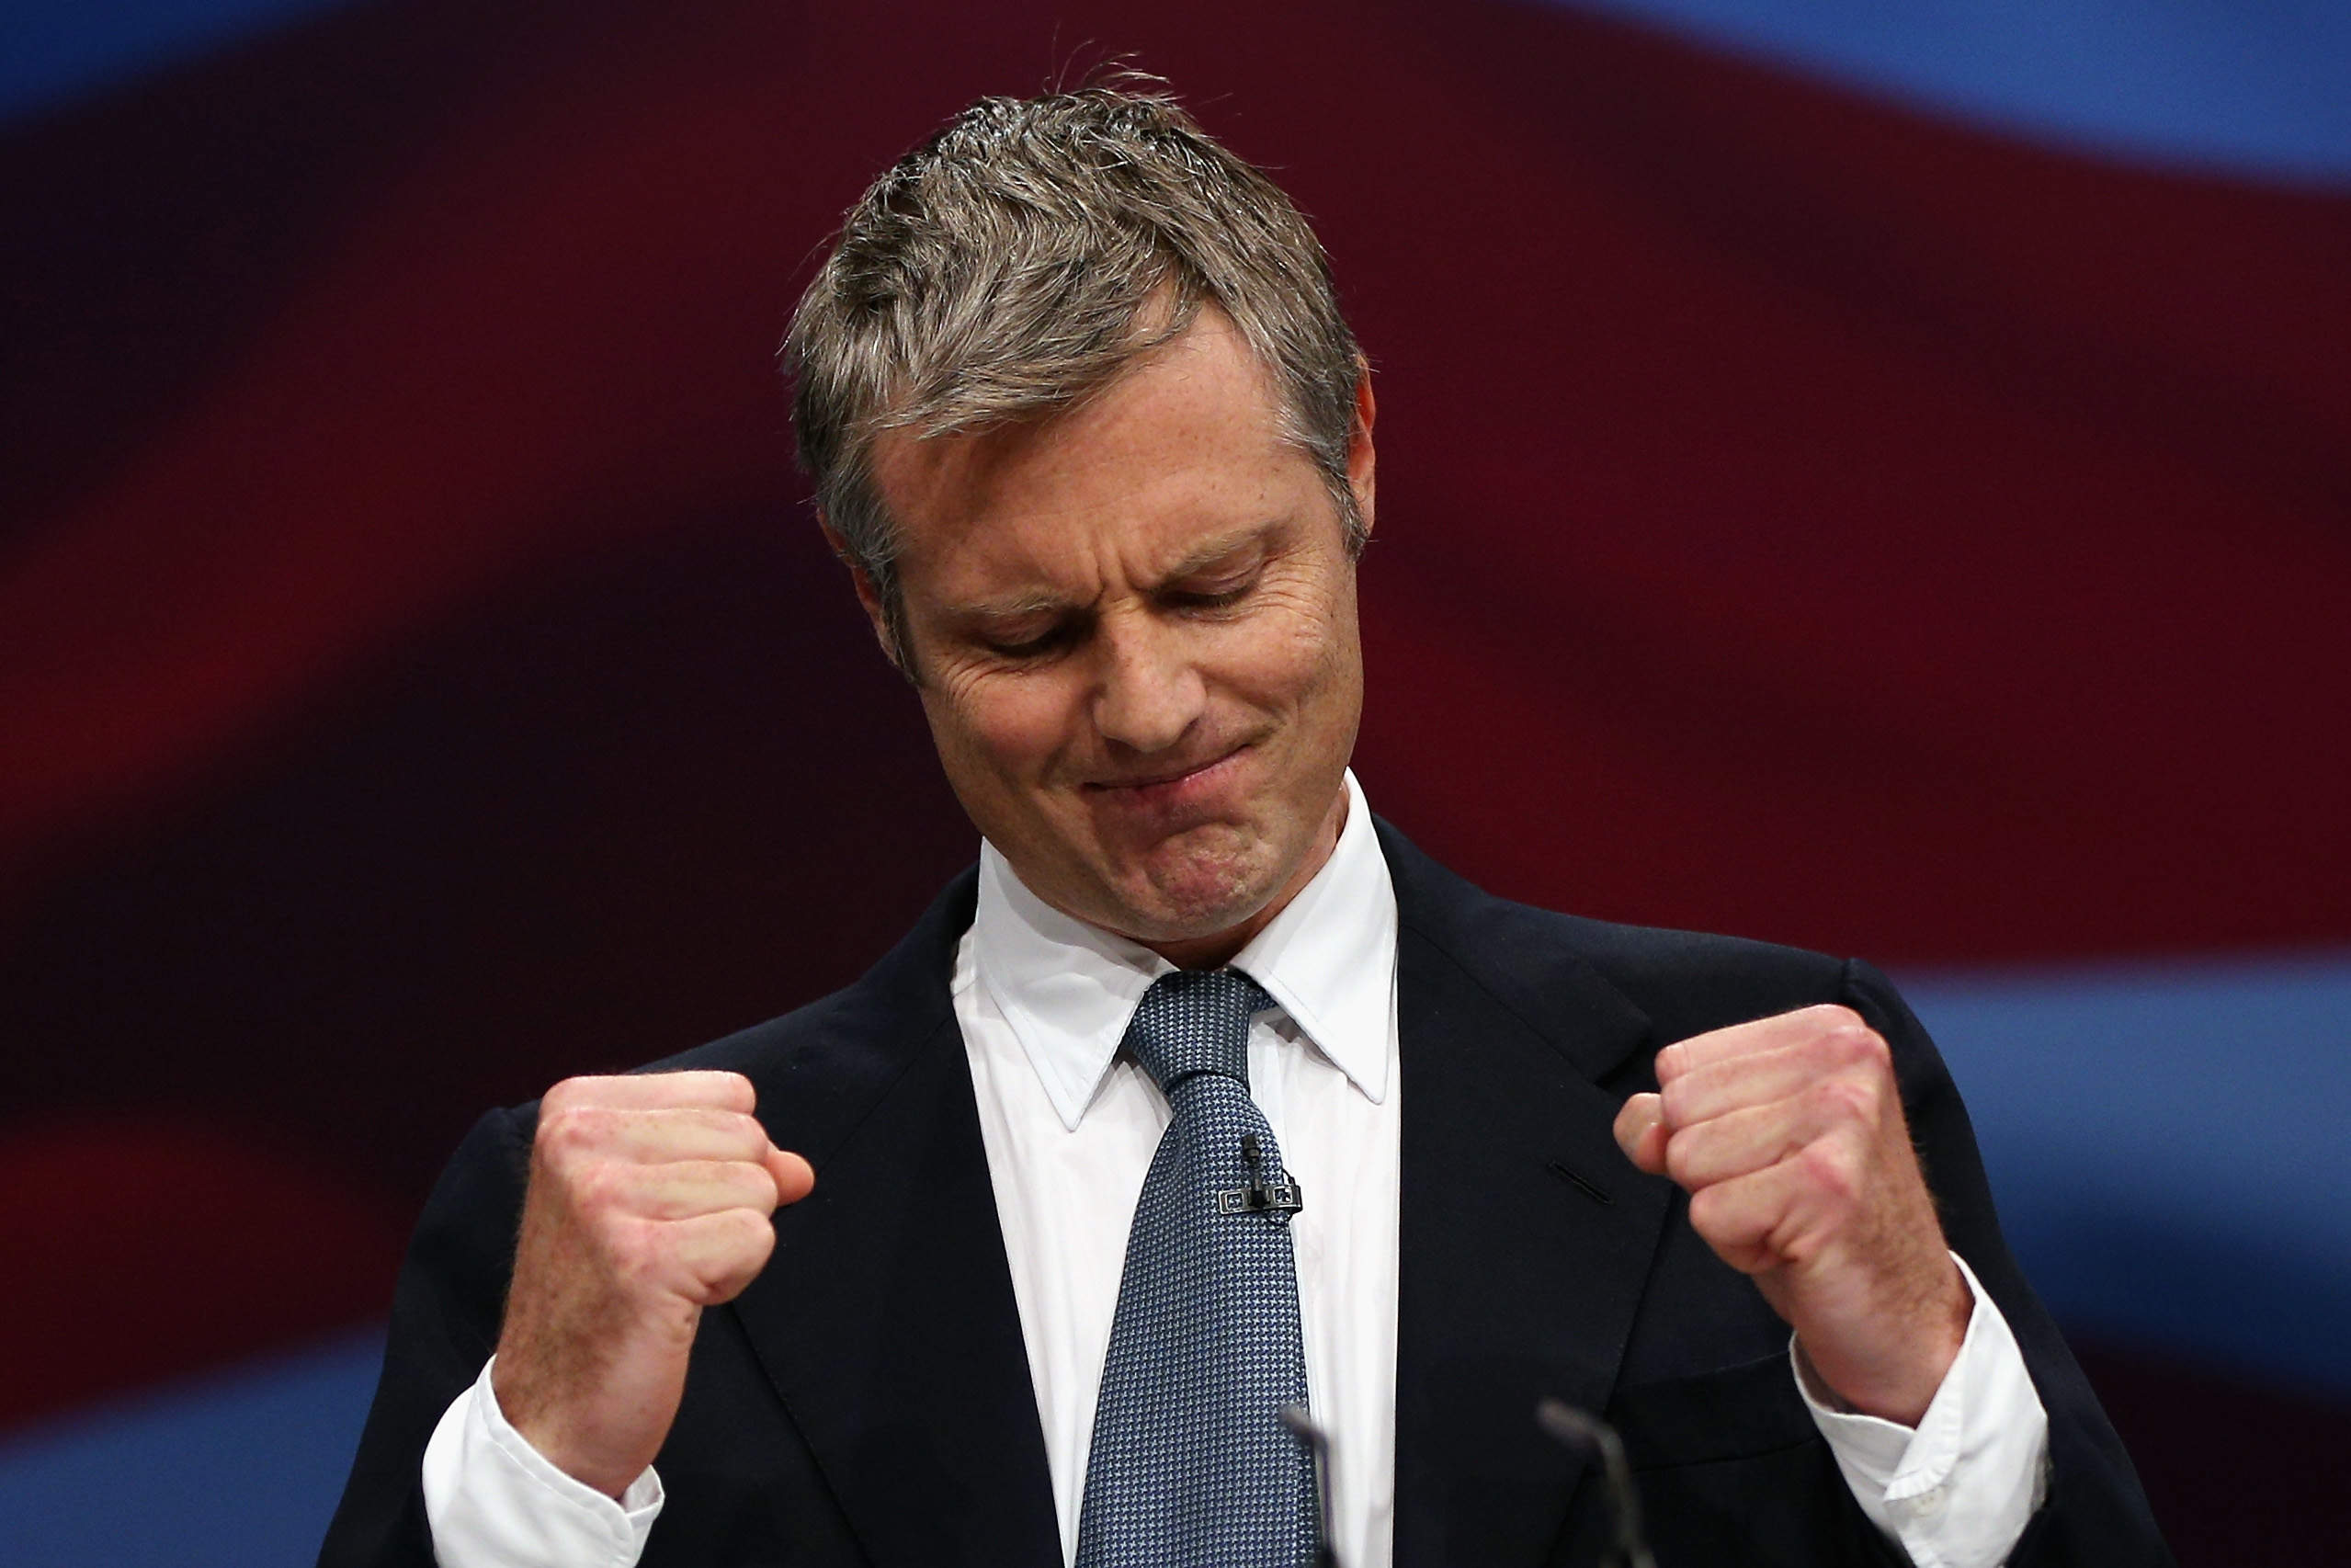 Low turnout may not be enough to save Zac Goldsmith